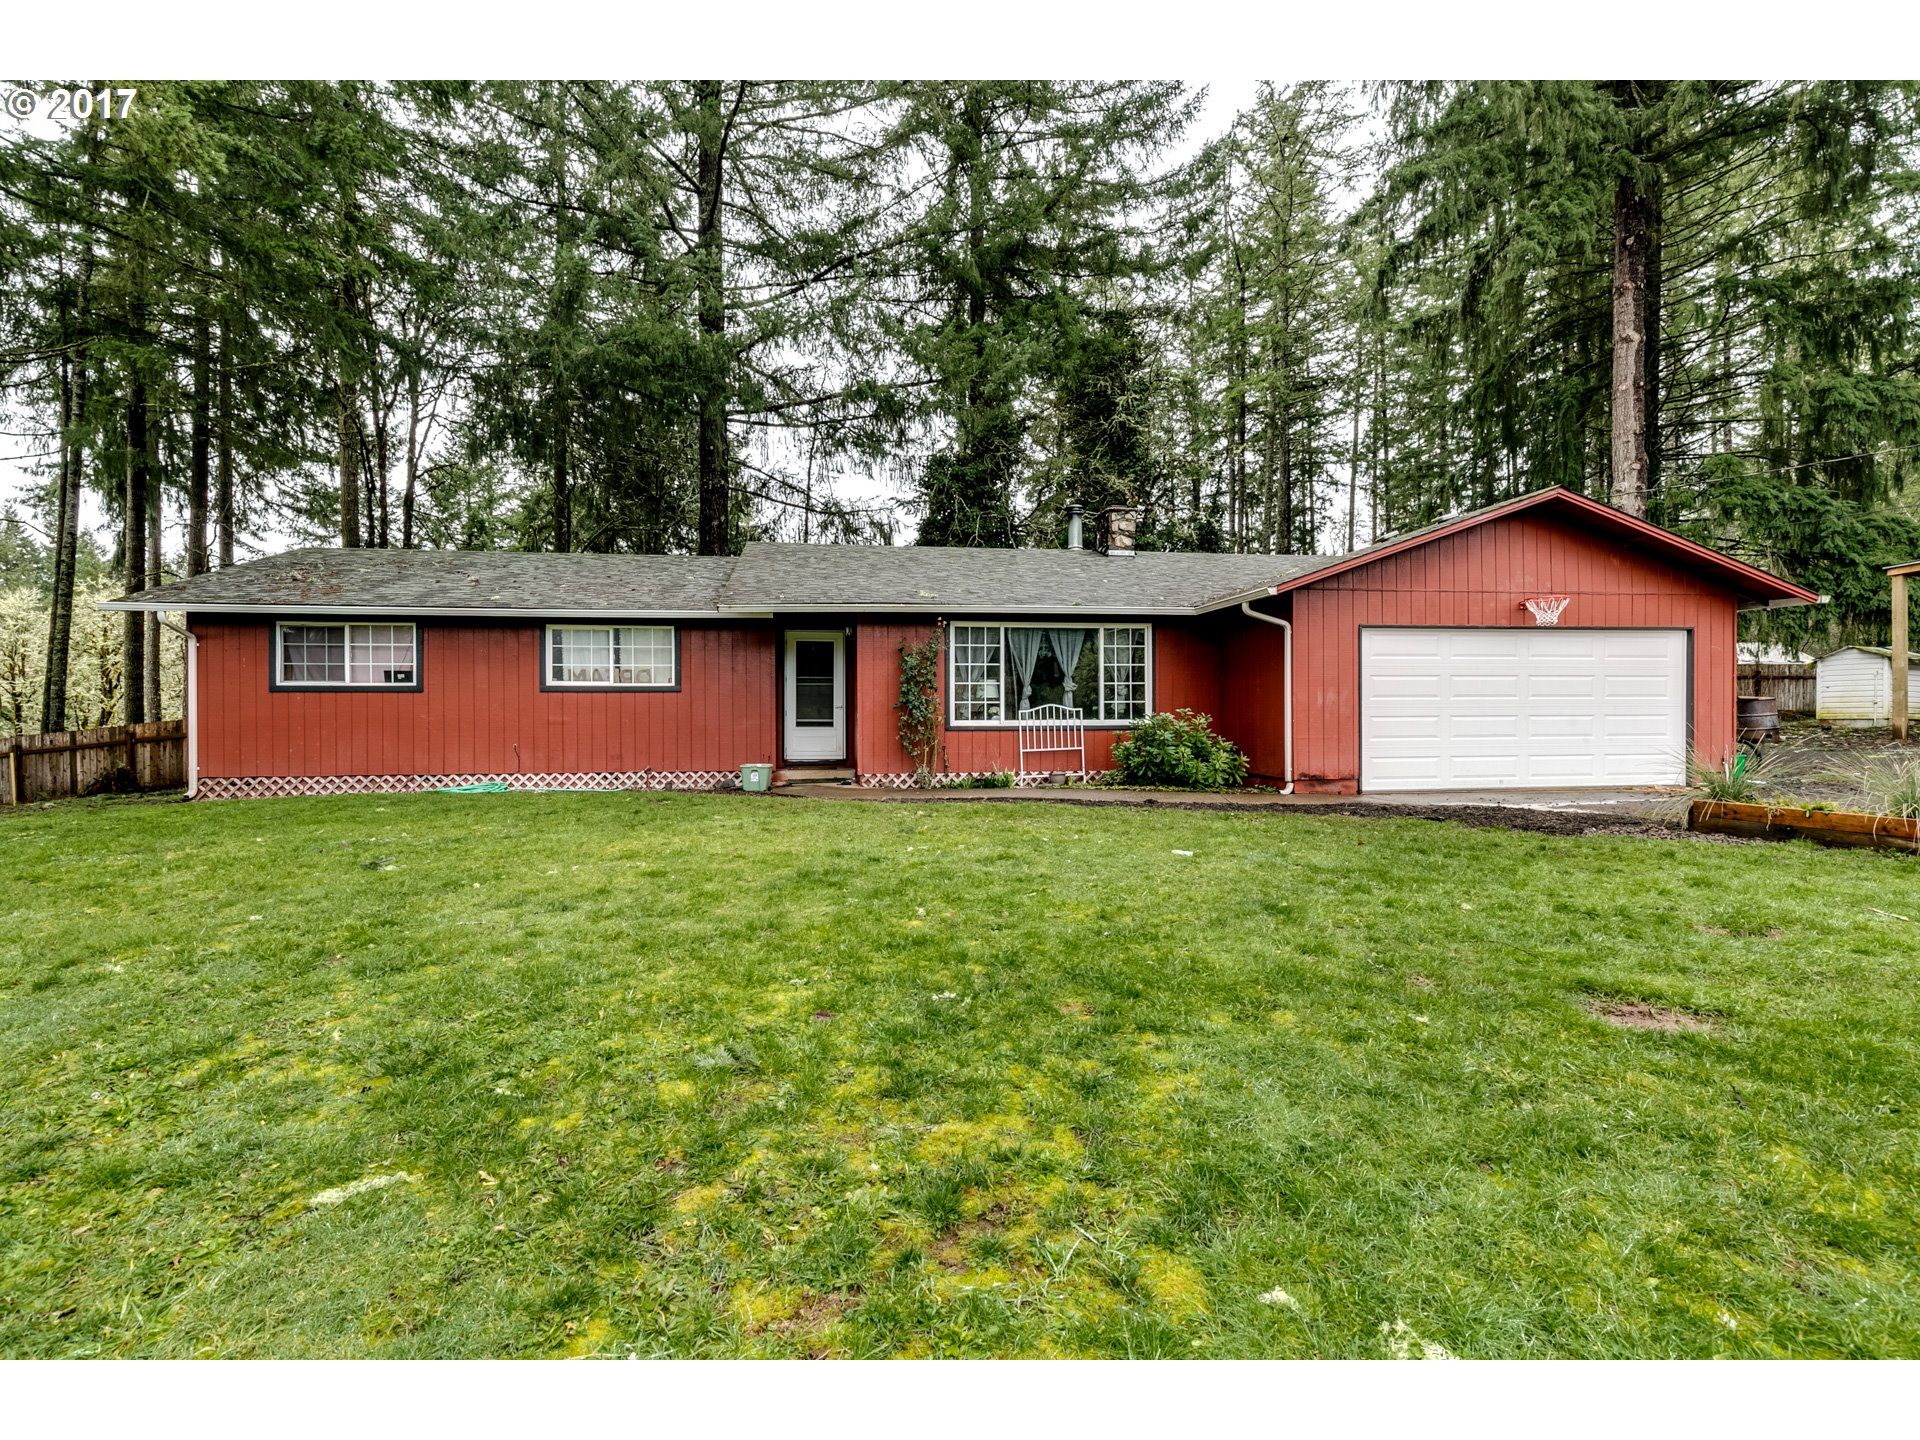 77827 QUAGLIA RD, Cottage Grove, OR 97424